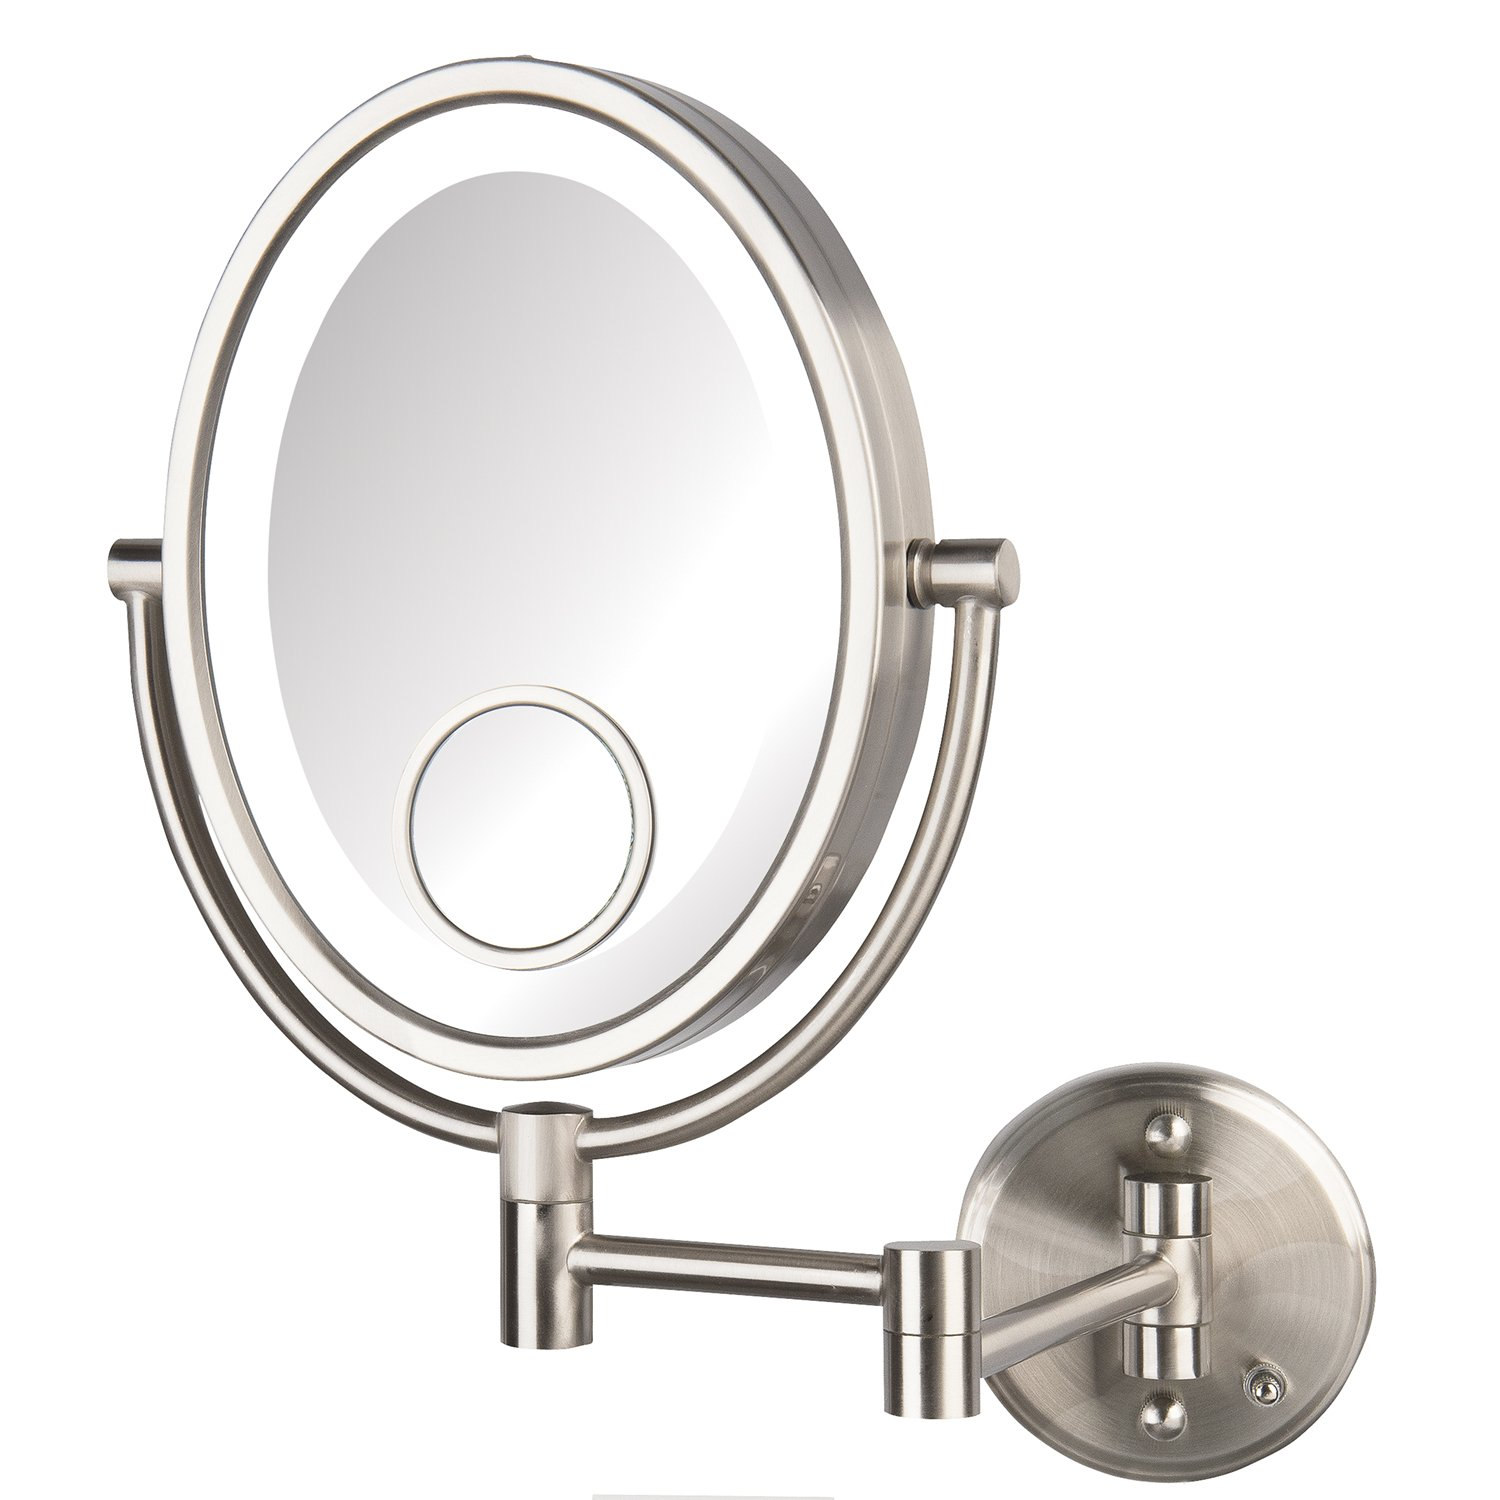 Direct Wire Jerdon Products Inc. Jerdon HL9515NLD LED Lighted Wall Mirror